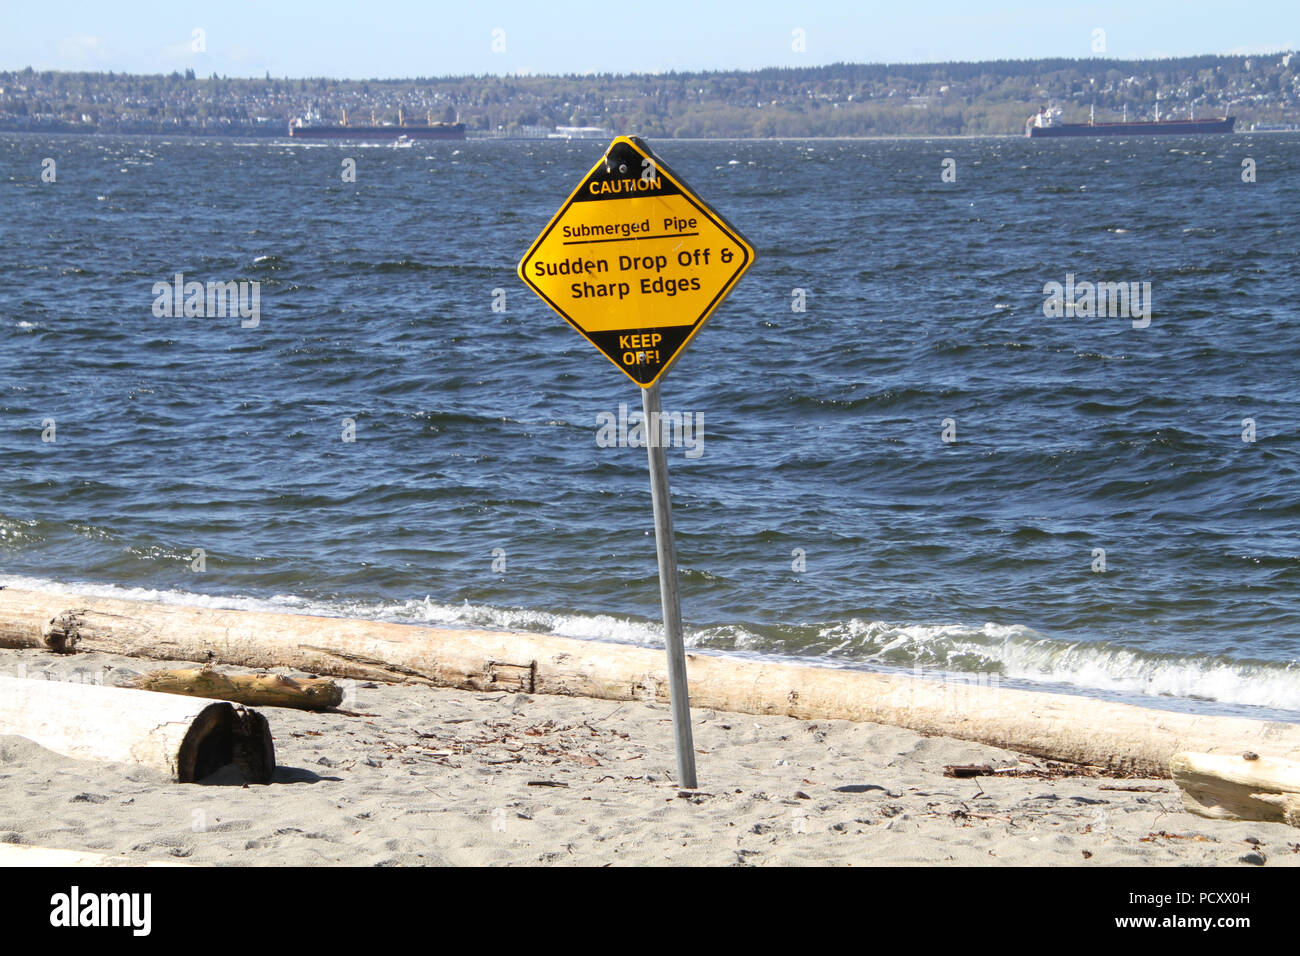 A yellow and black sign indicating a submerged pipe and a drop off with sharp edges on a post in the middle of a sandy beach. - Stock Image